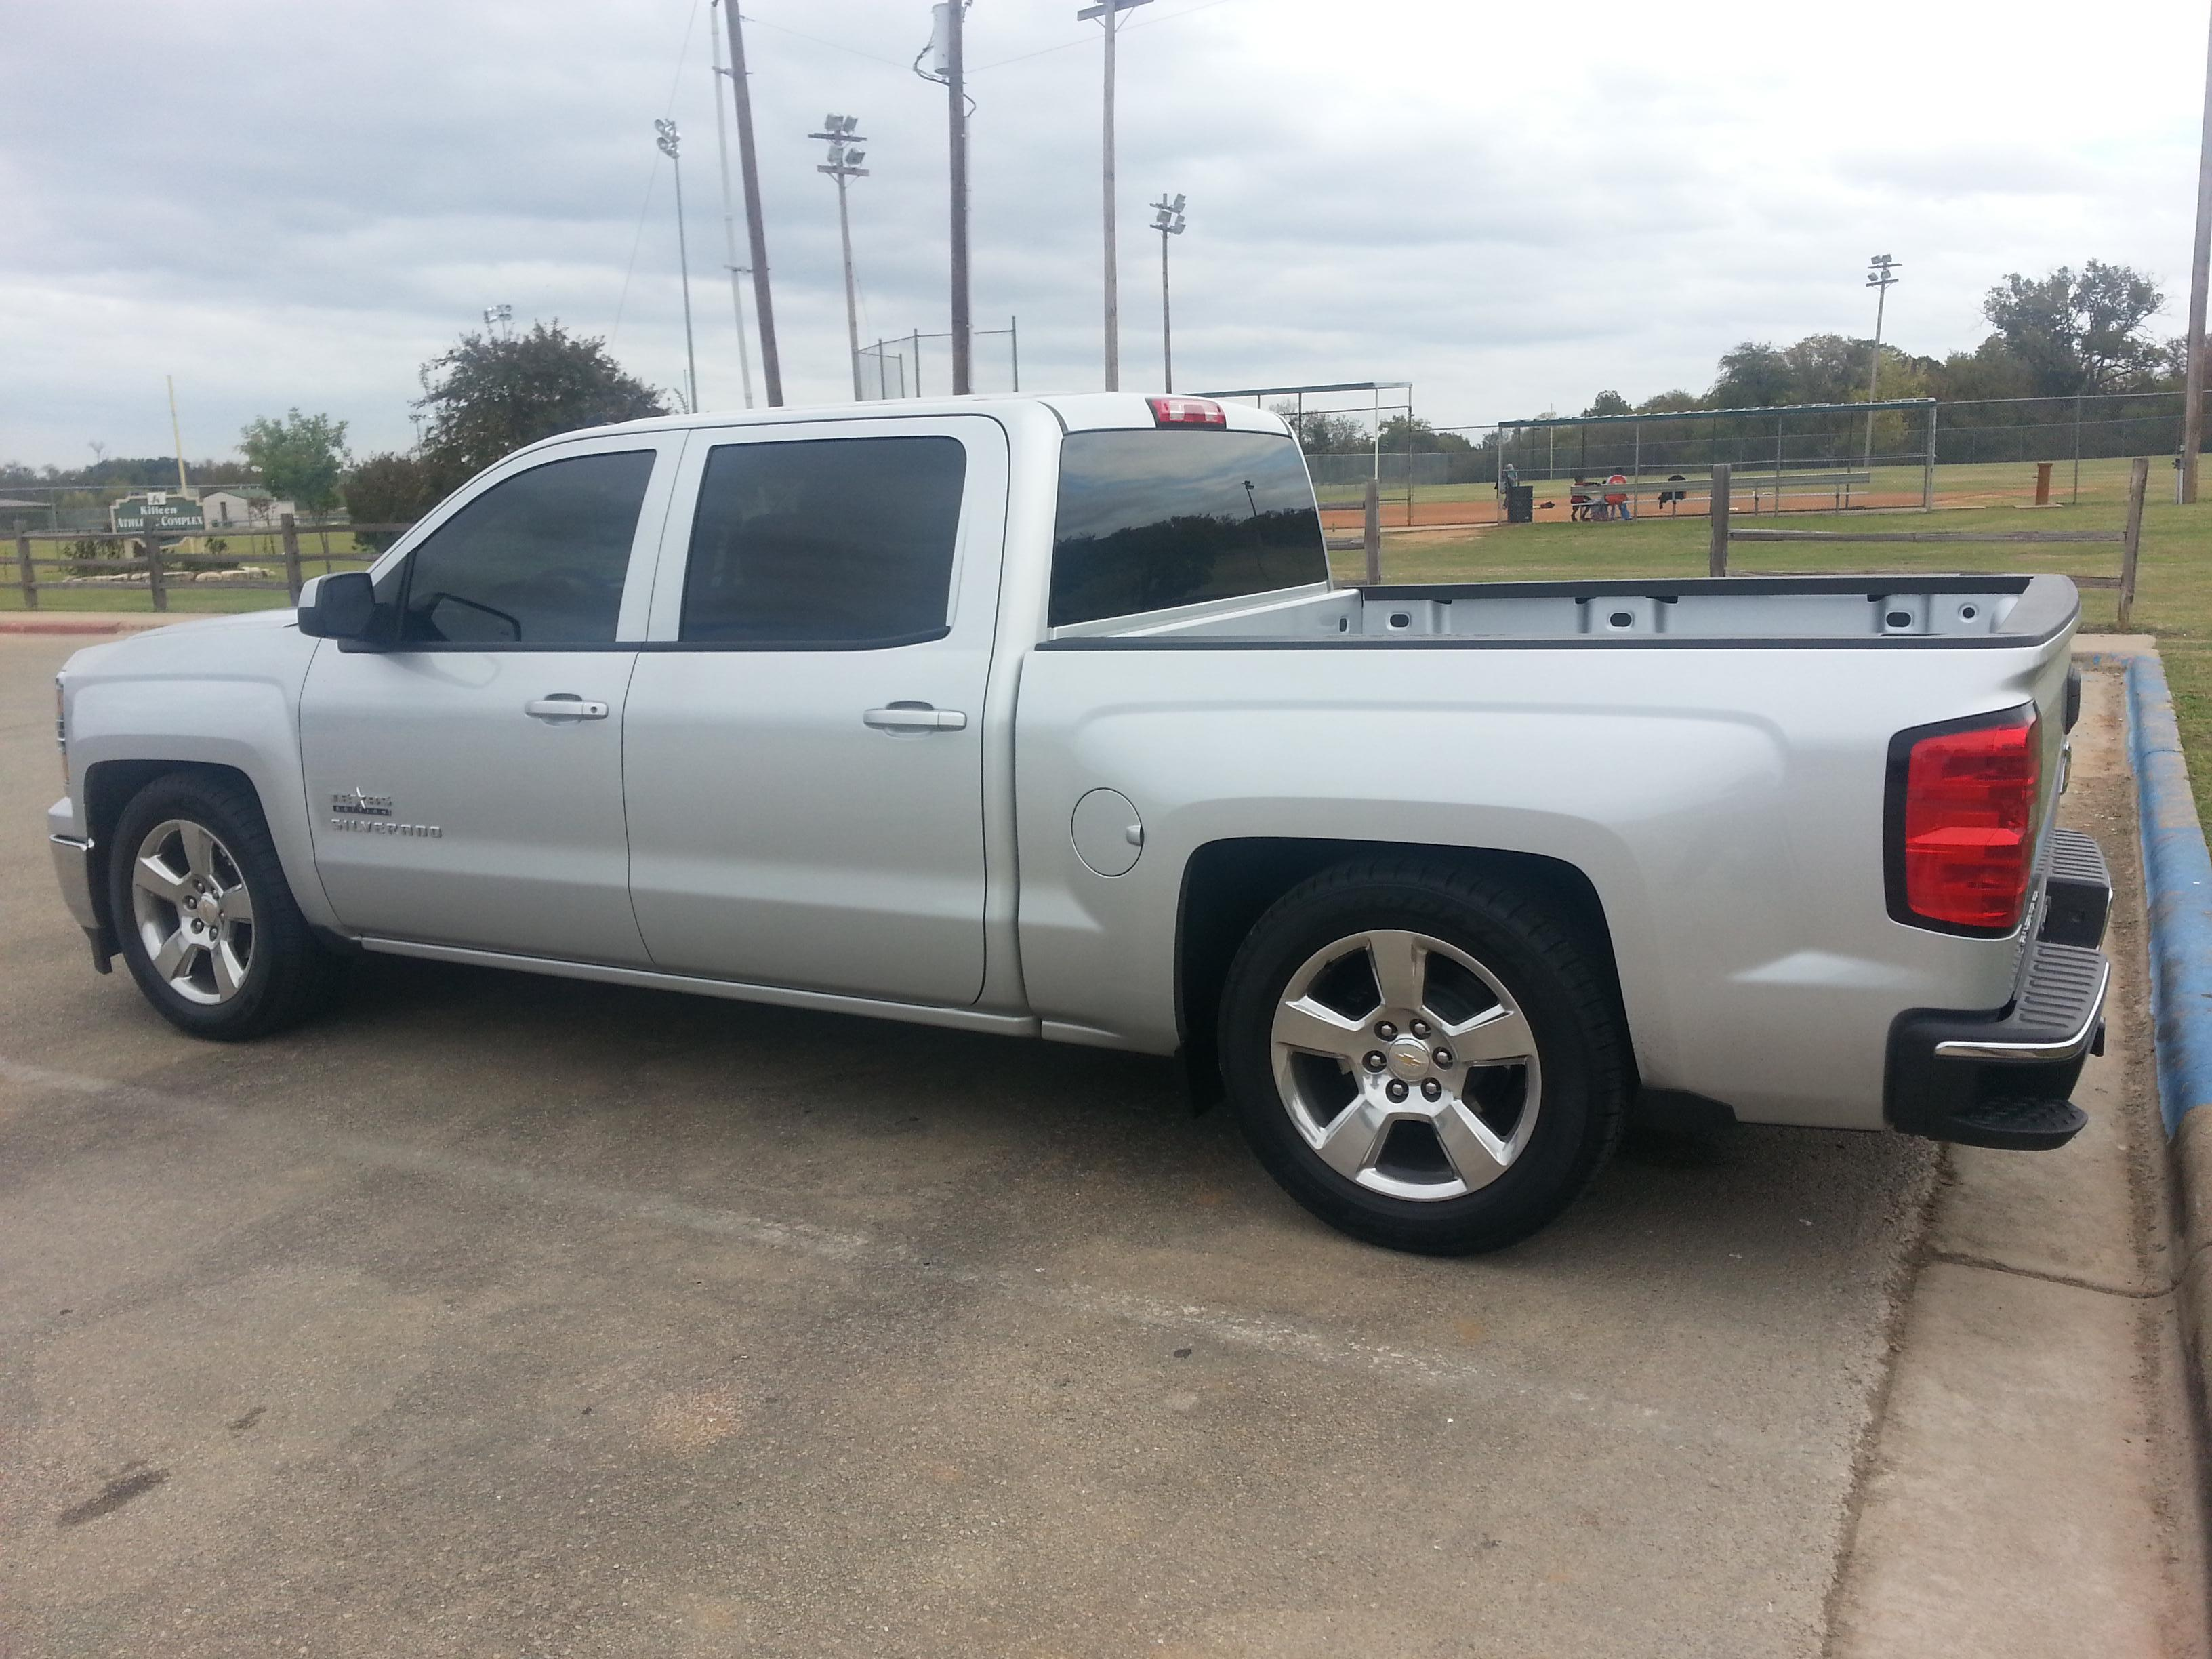 Demex69 2014 Chevrolet Silverado 1500 Crew Cab Specs Photos Modification Info At Cardomain